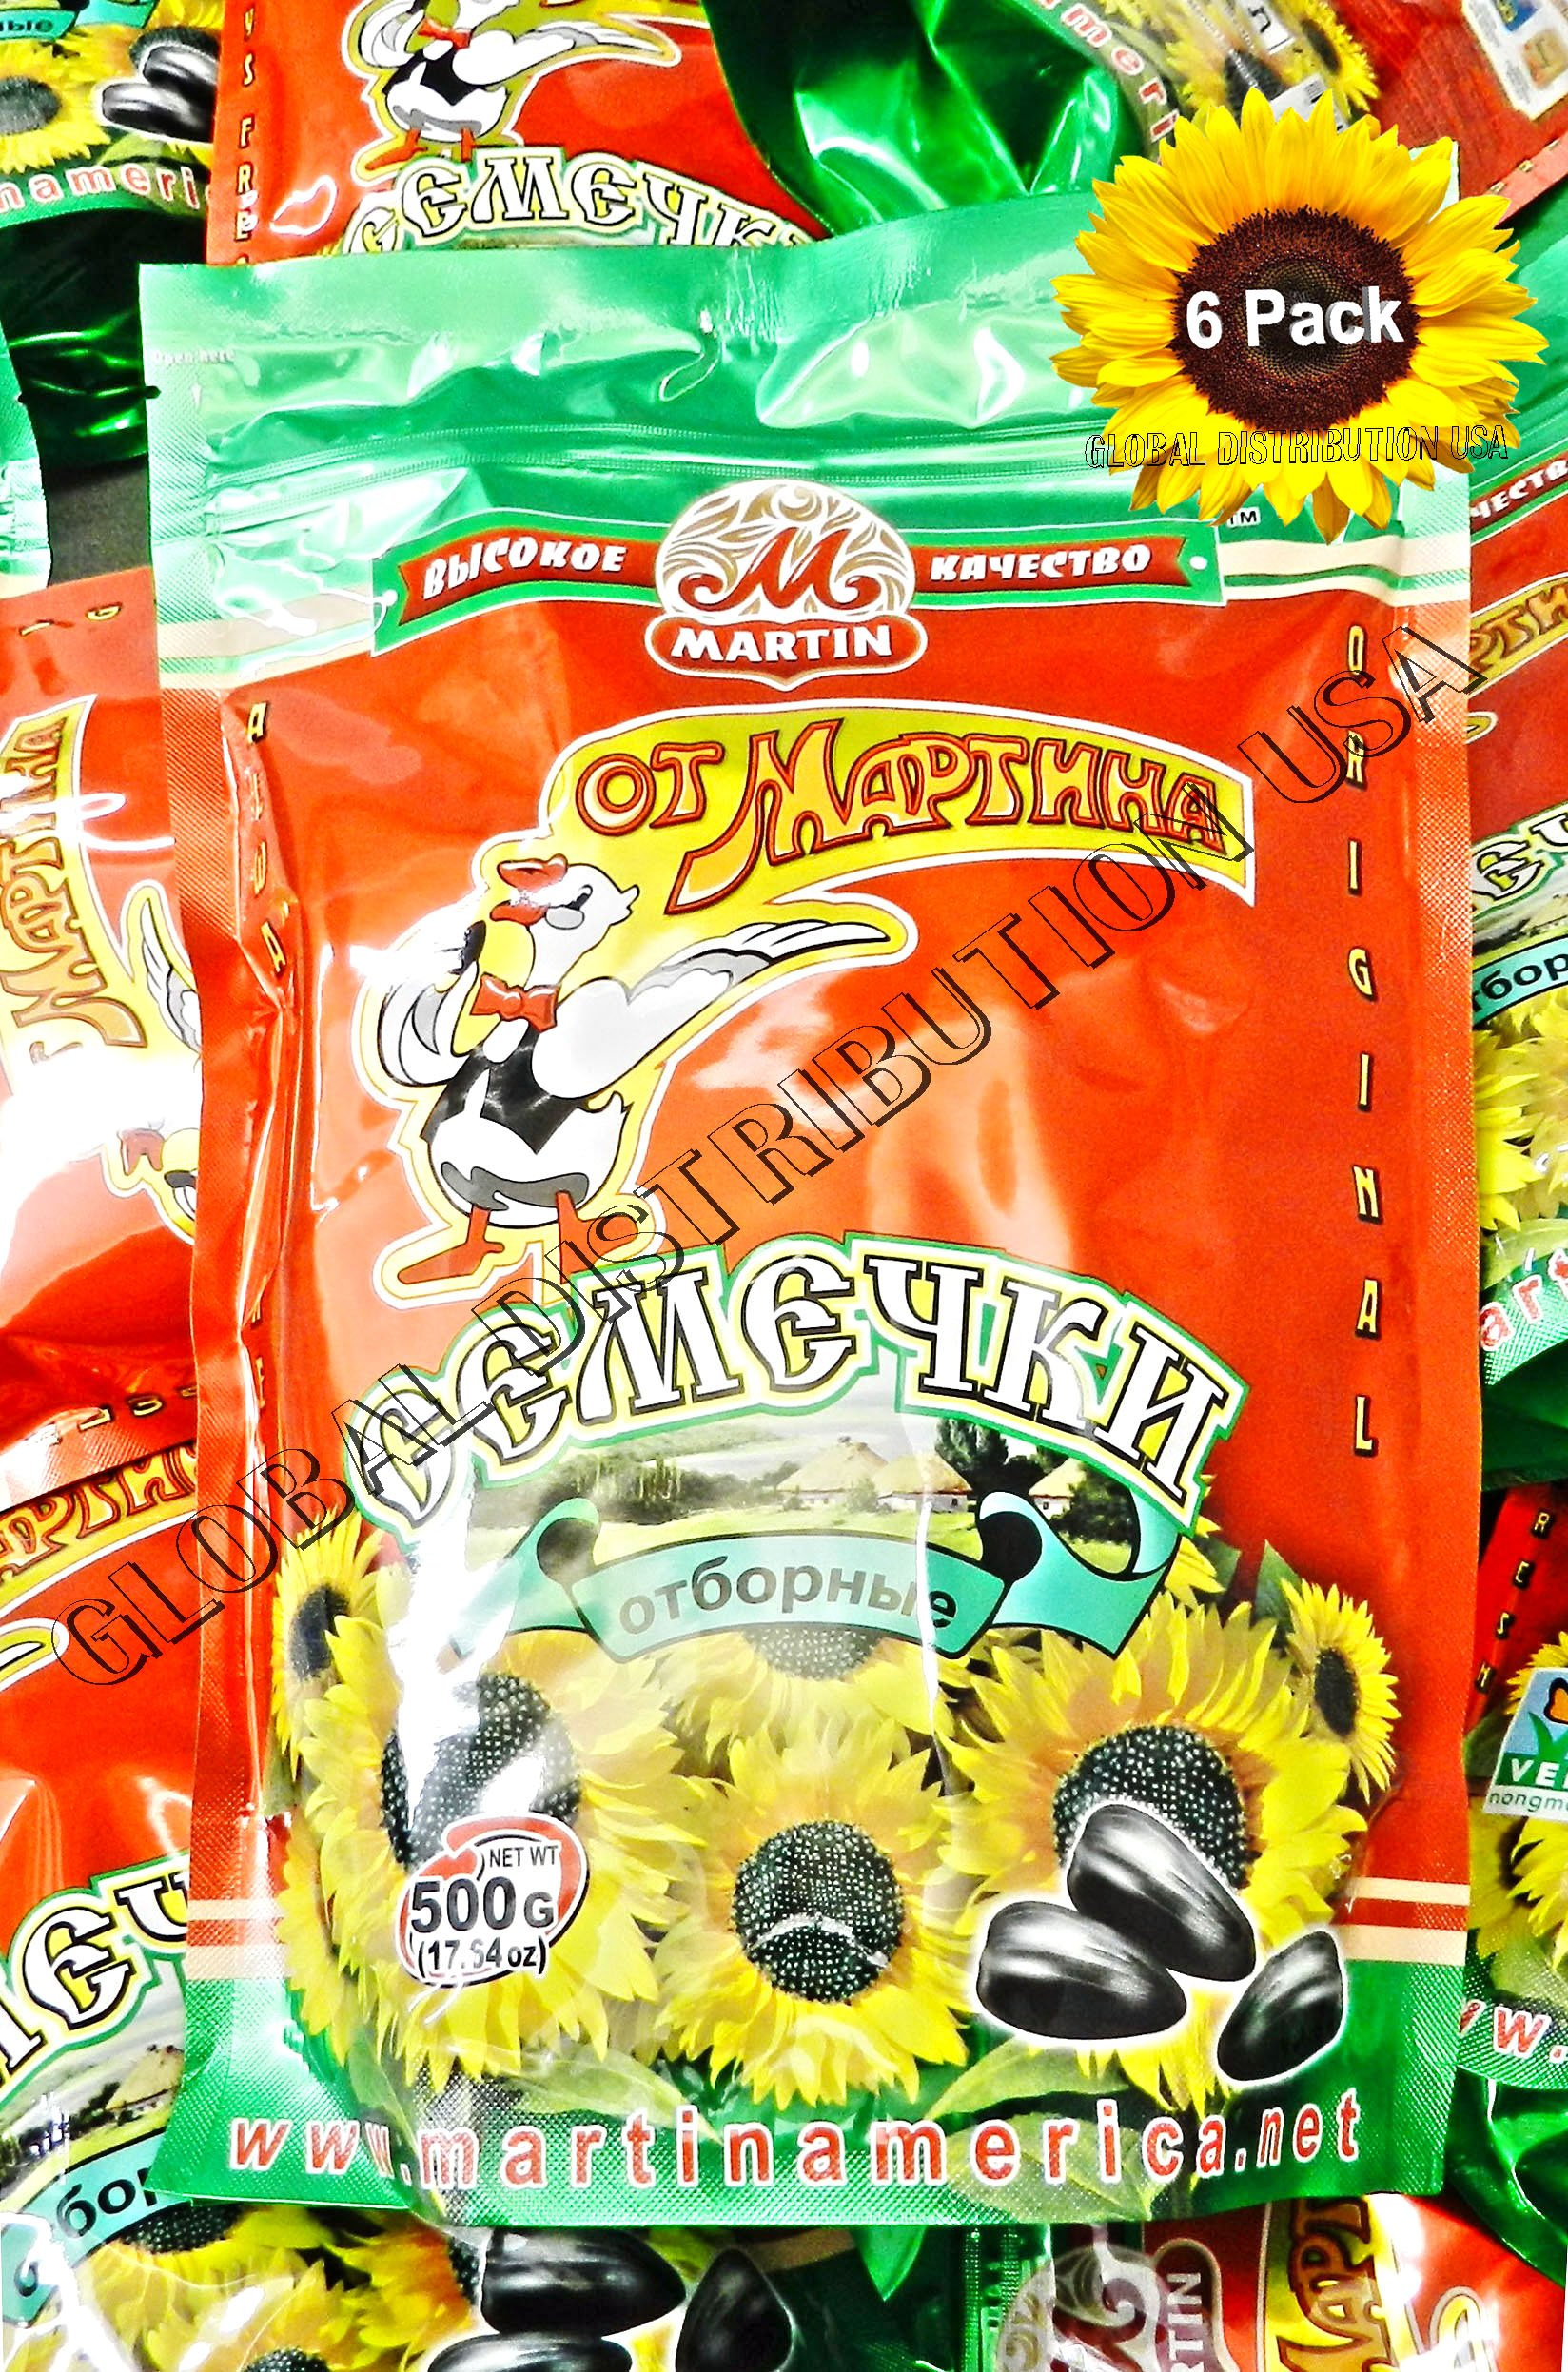 Premium Roasted Sunflower Seeds by Mr.Martin (Ot Martina) Unsalted Non-GMO 500G Pack of 6